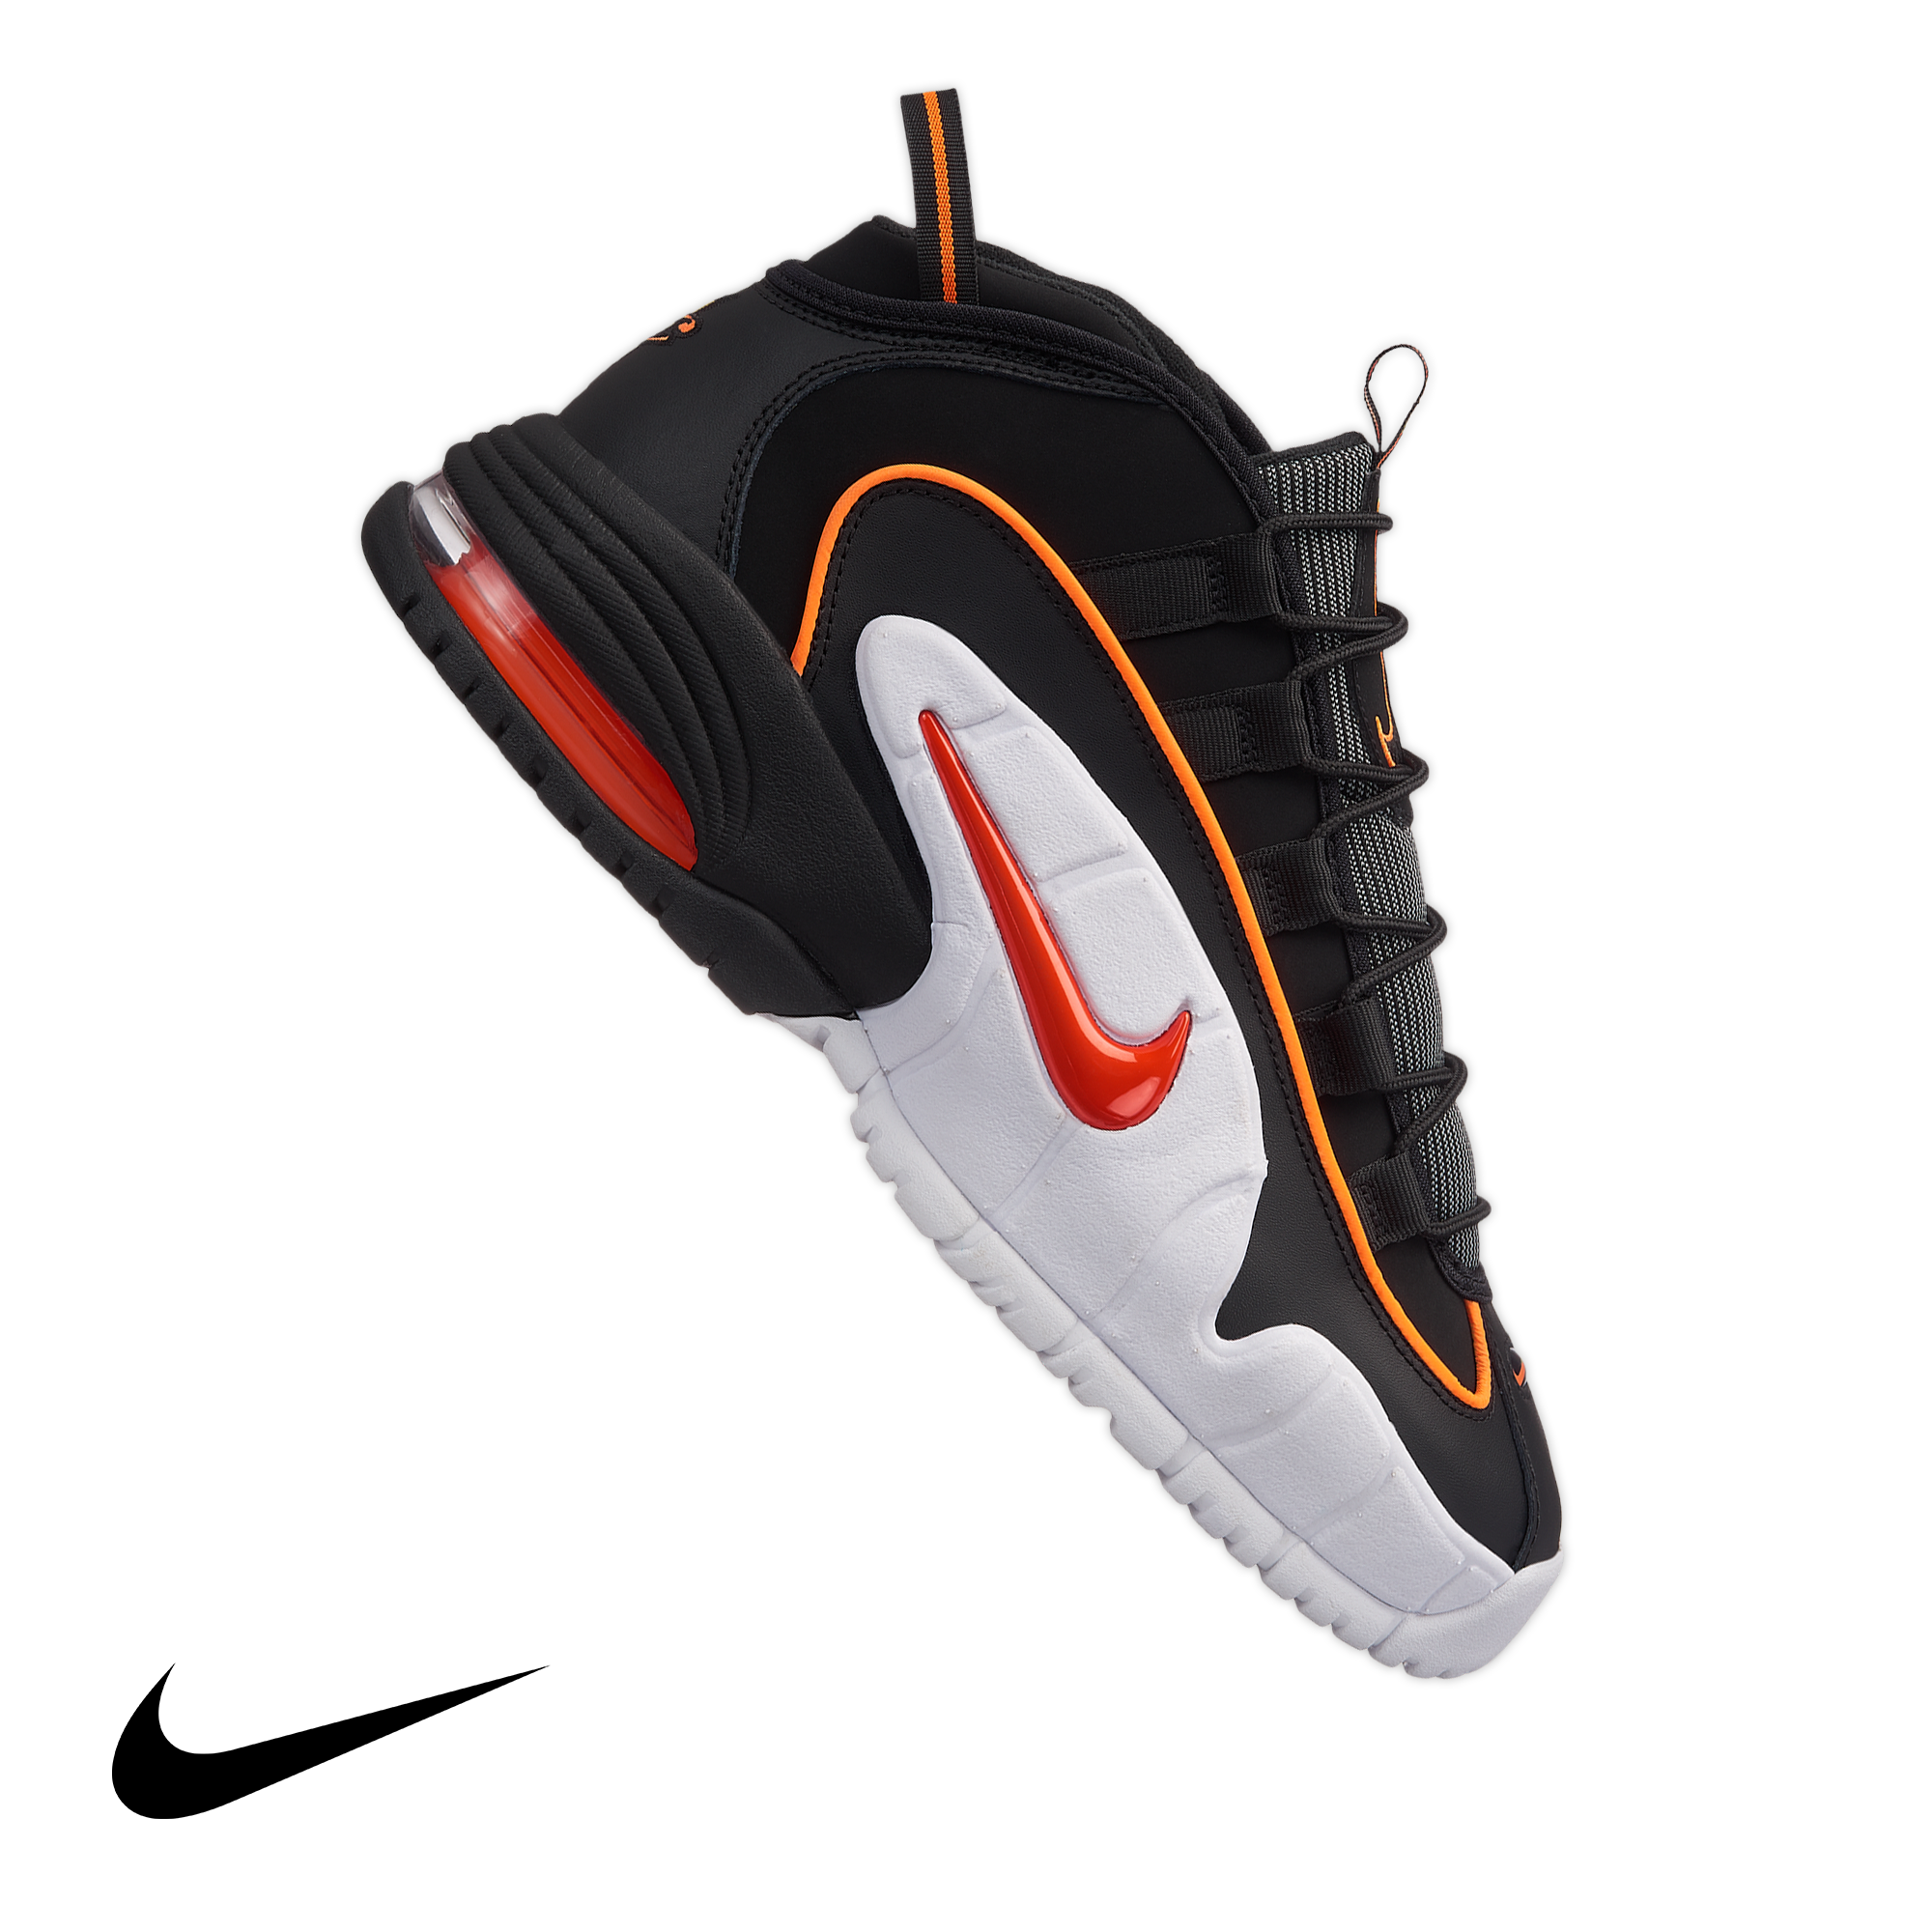 on sale f4cdc 3803d Nike-Lebron James Shoes Sale USA Outlet Online, Discount Nike-Lebron James  Shoes With Free Shipping